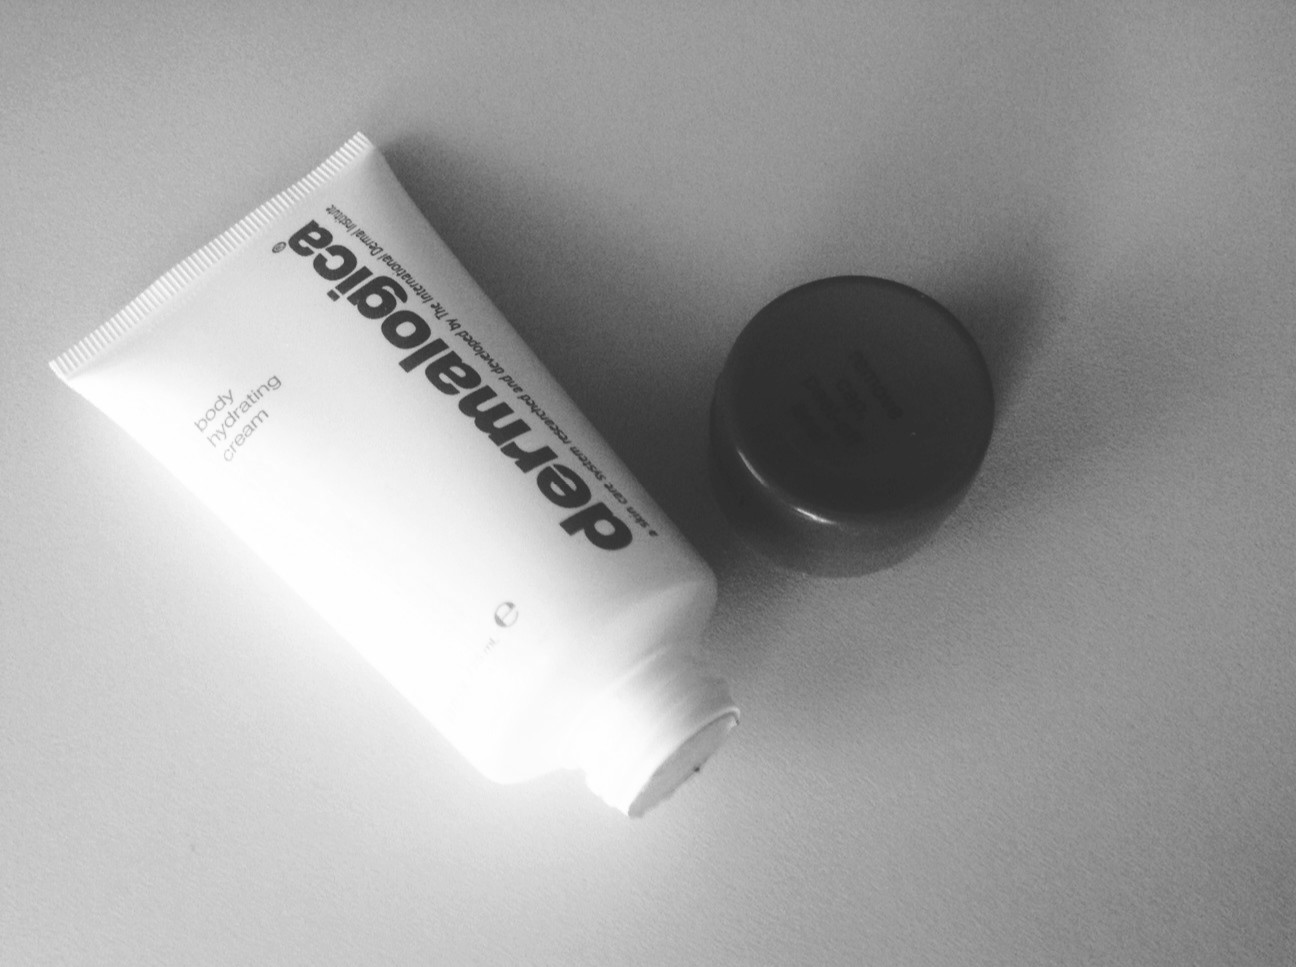 Review Dermalogica body hydrating cream